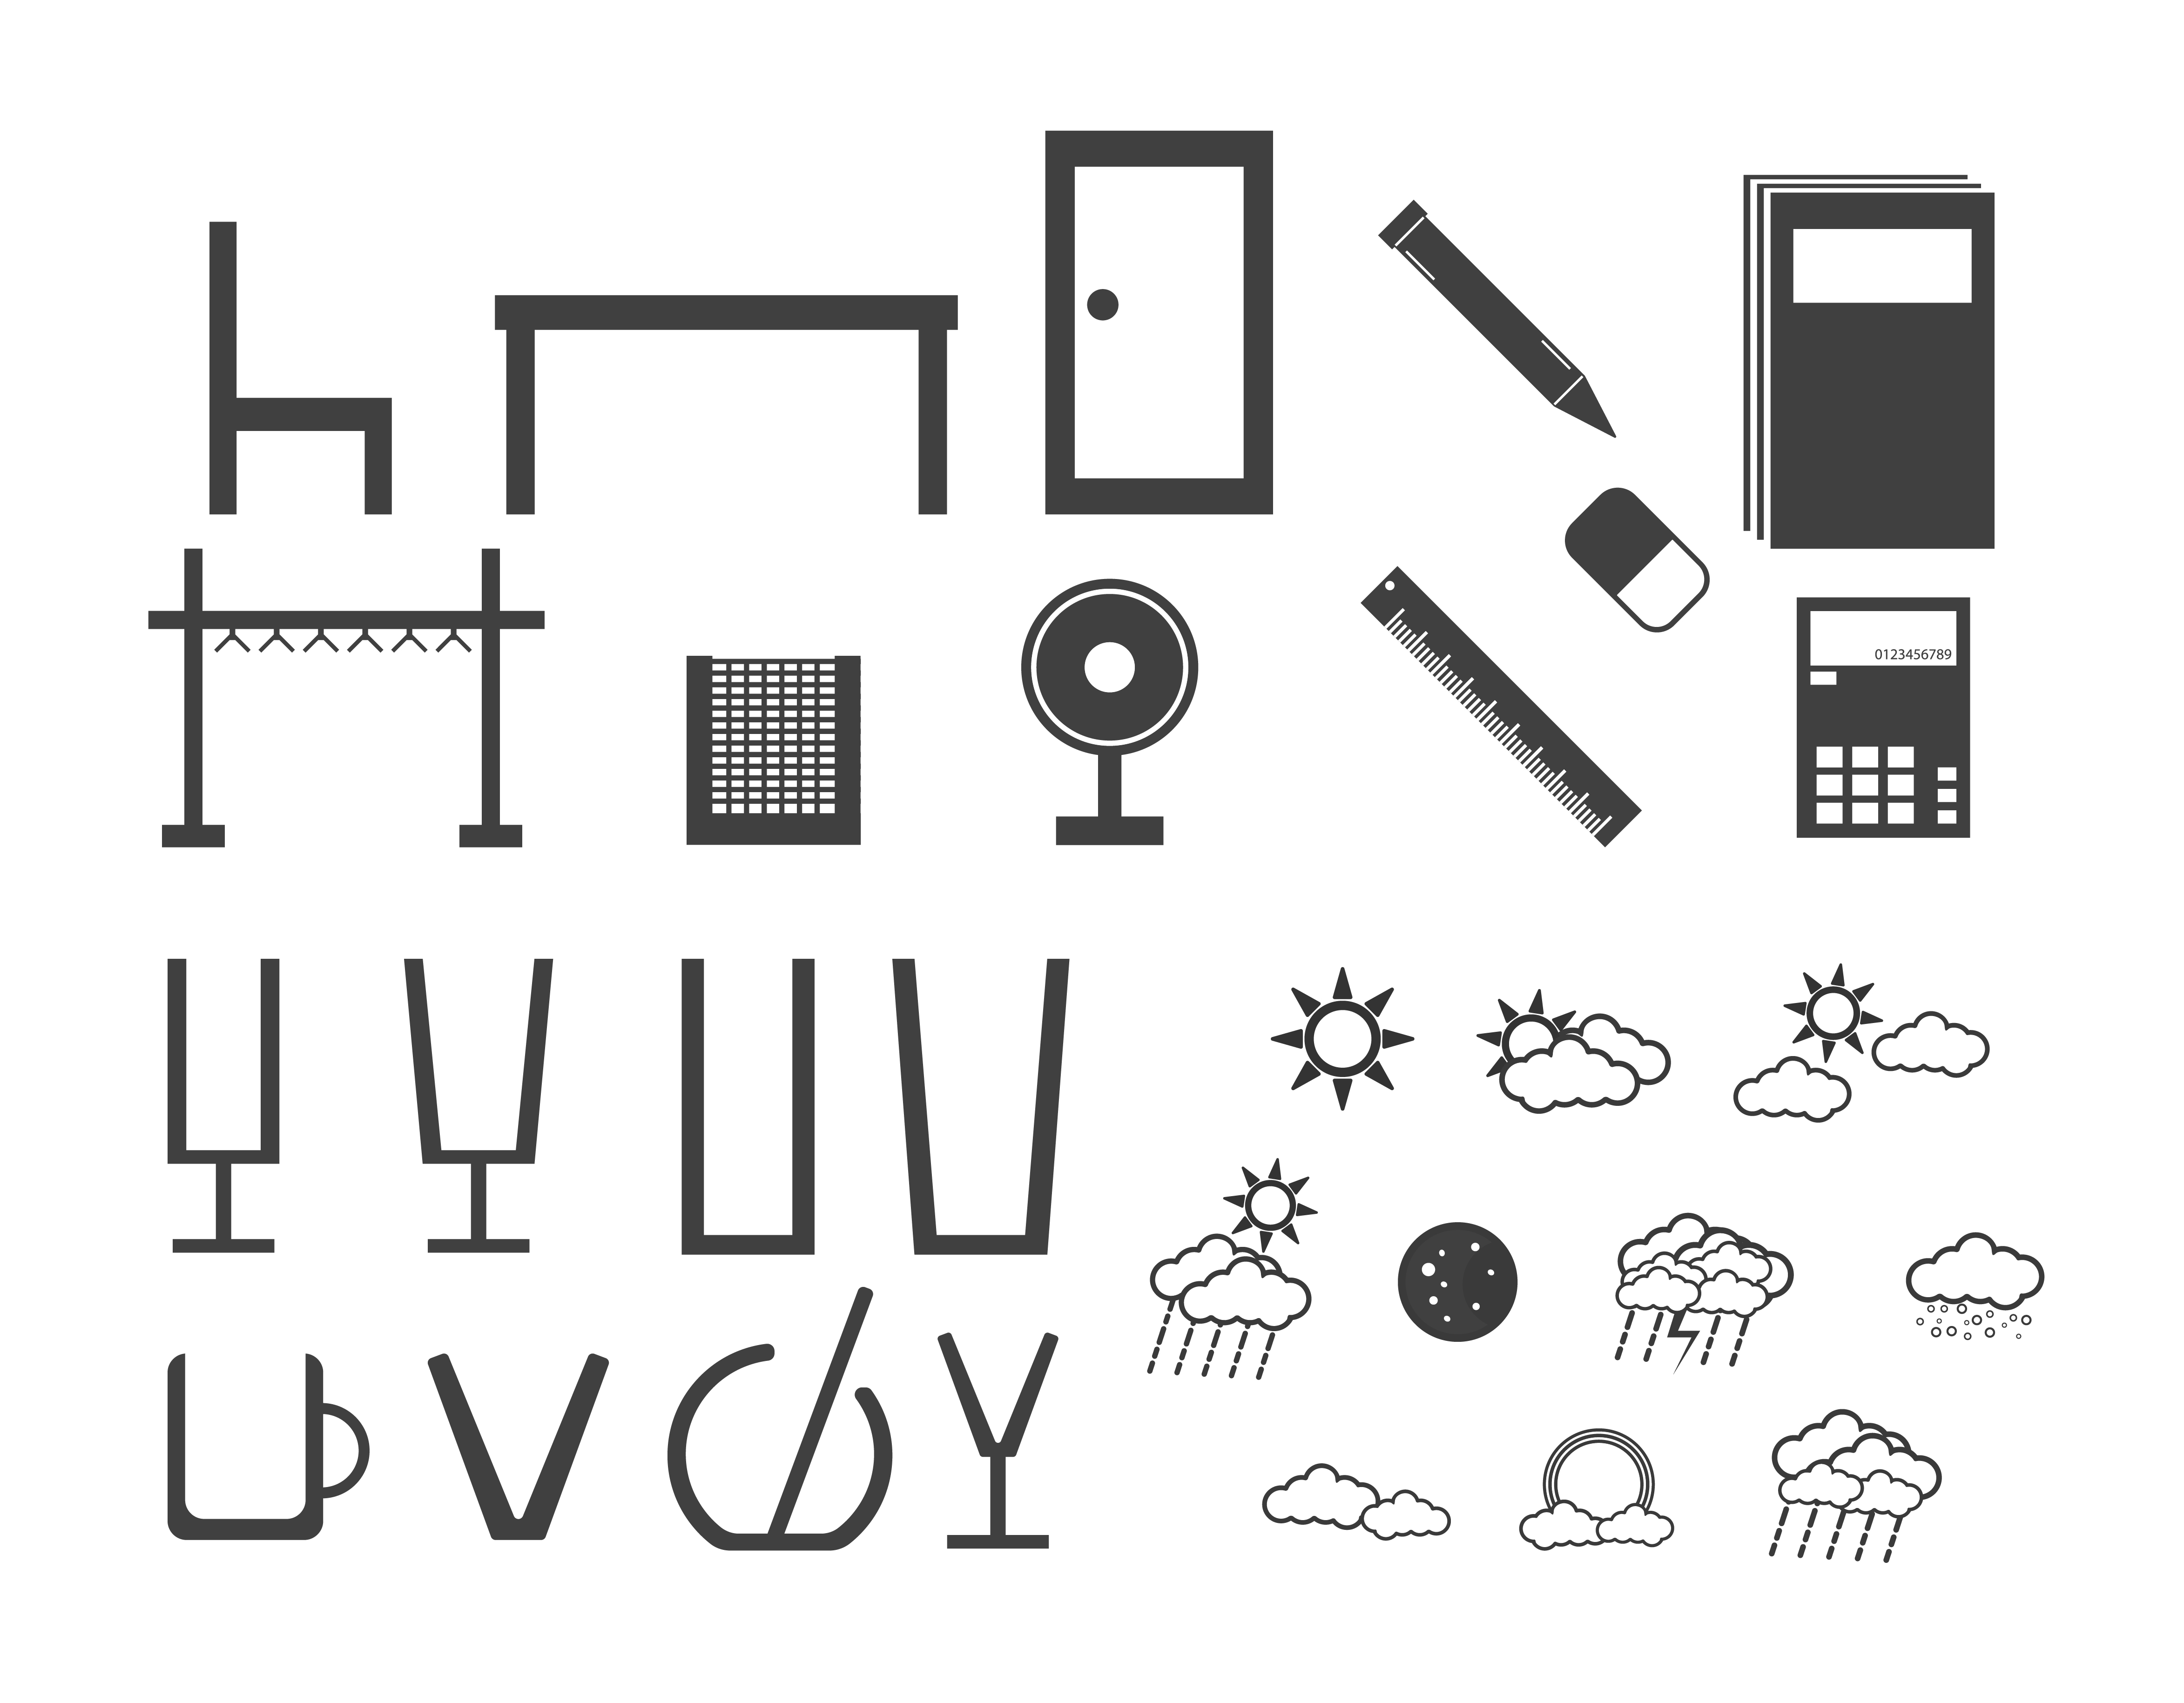 Different type of electronic equipments, clouds, home